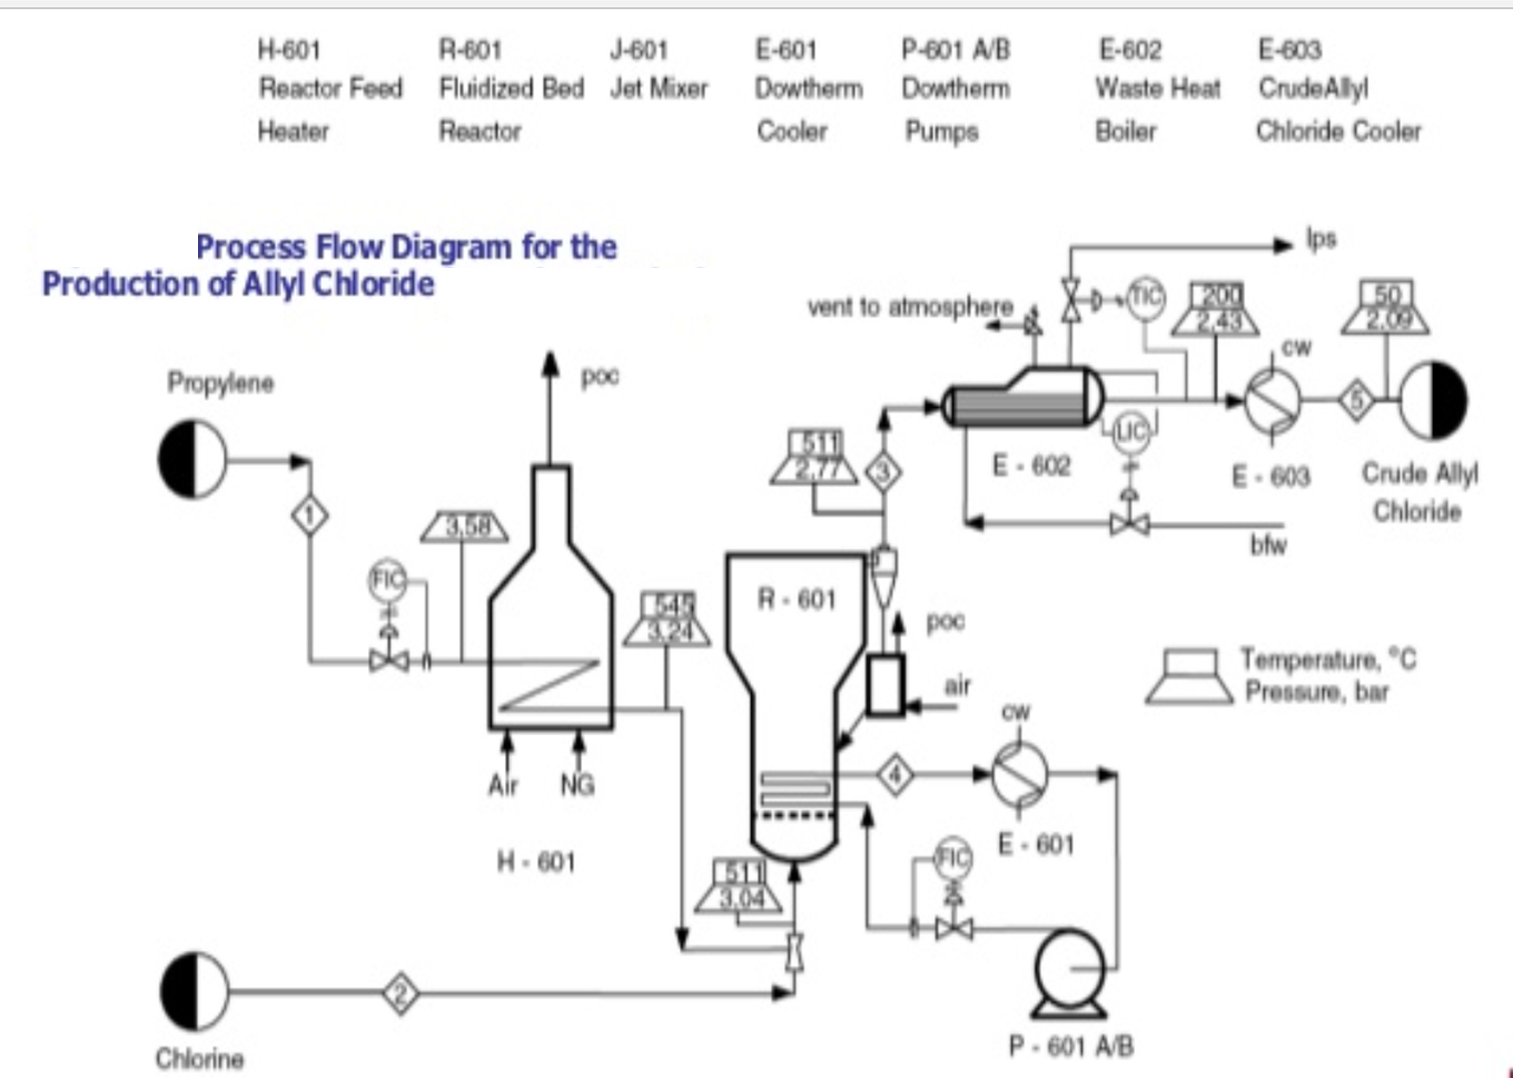 medium resolution of process flow diagram chemical engineering share circuit diagrams process flow diagram chemical engineering software process flow diagram chemical